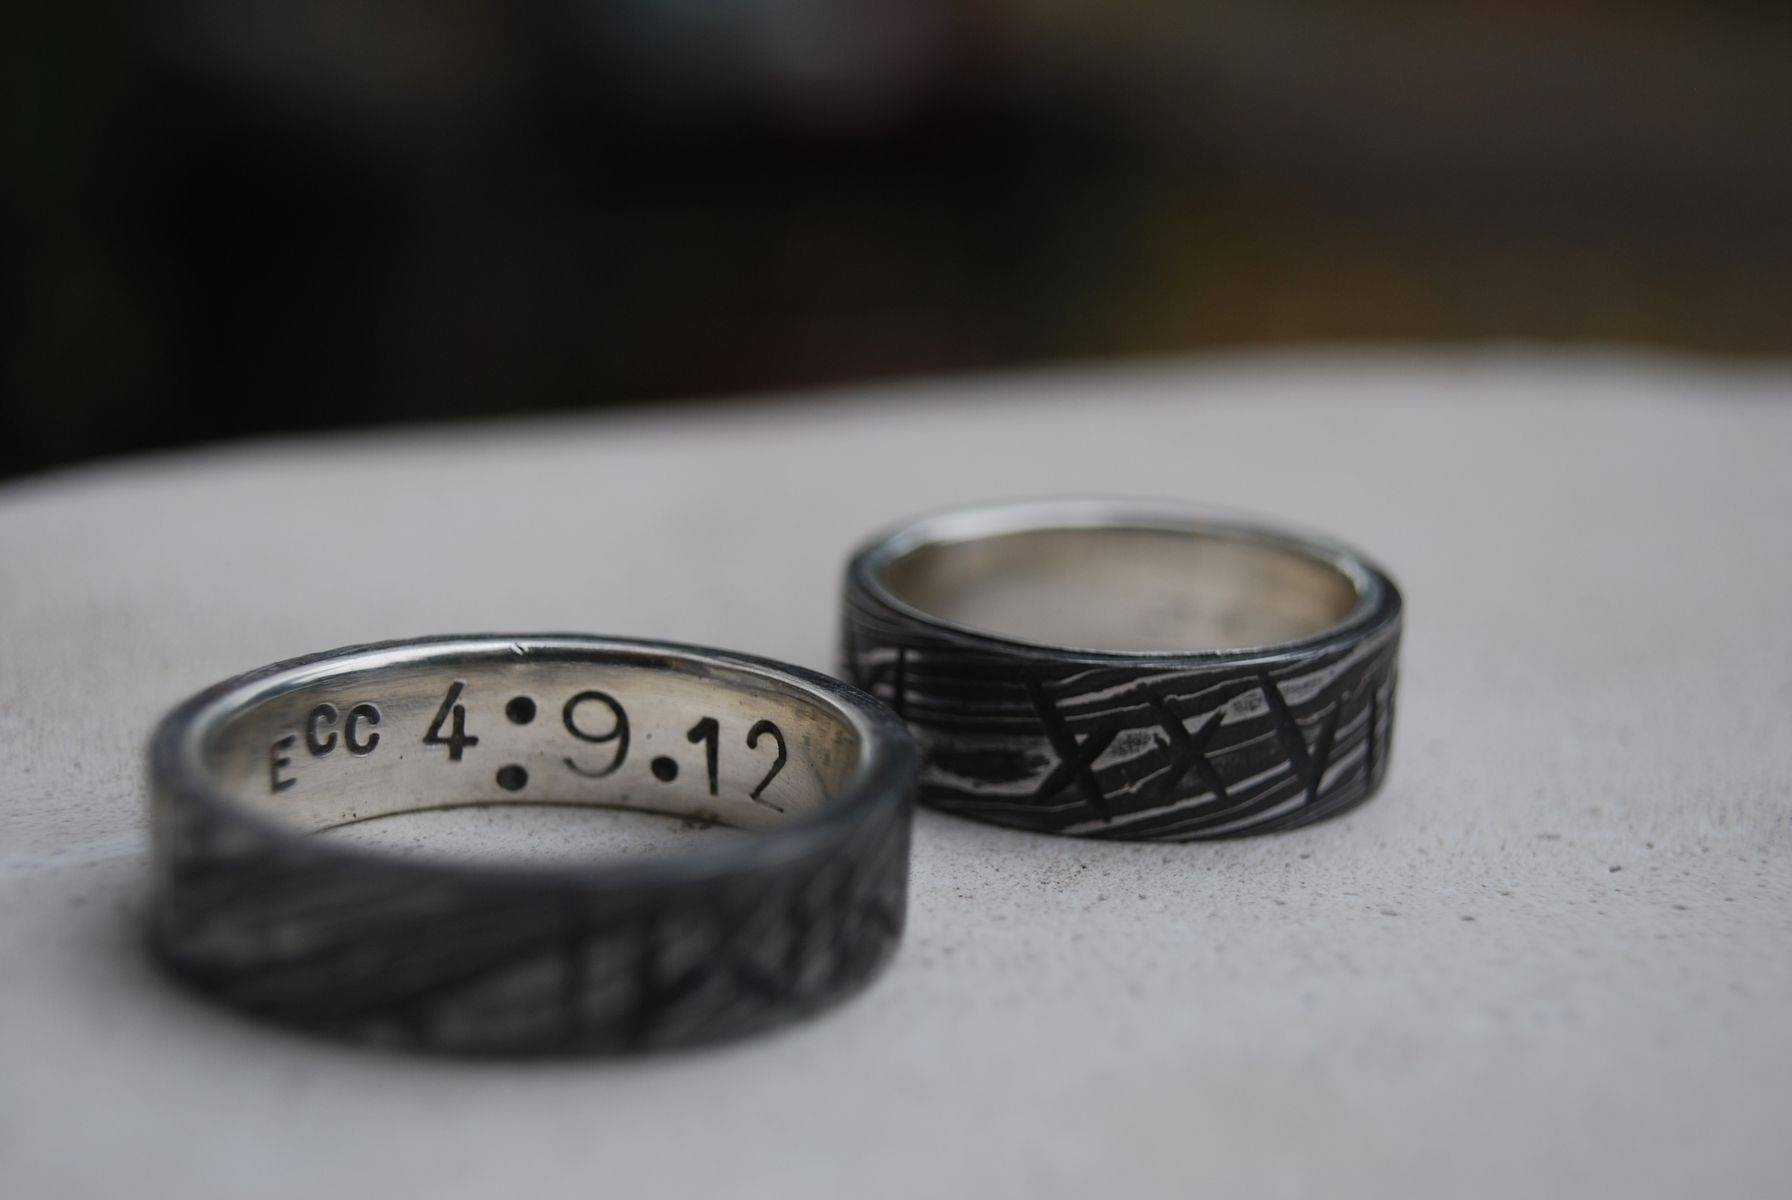 Anniversary Rings Ideas & Designs | Custommade Regarding Latest Engraved Anniversary Rings (View 2 of 25)